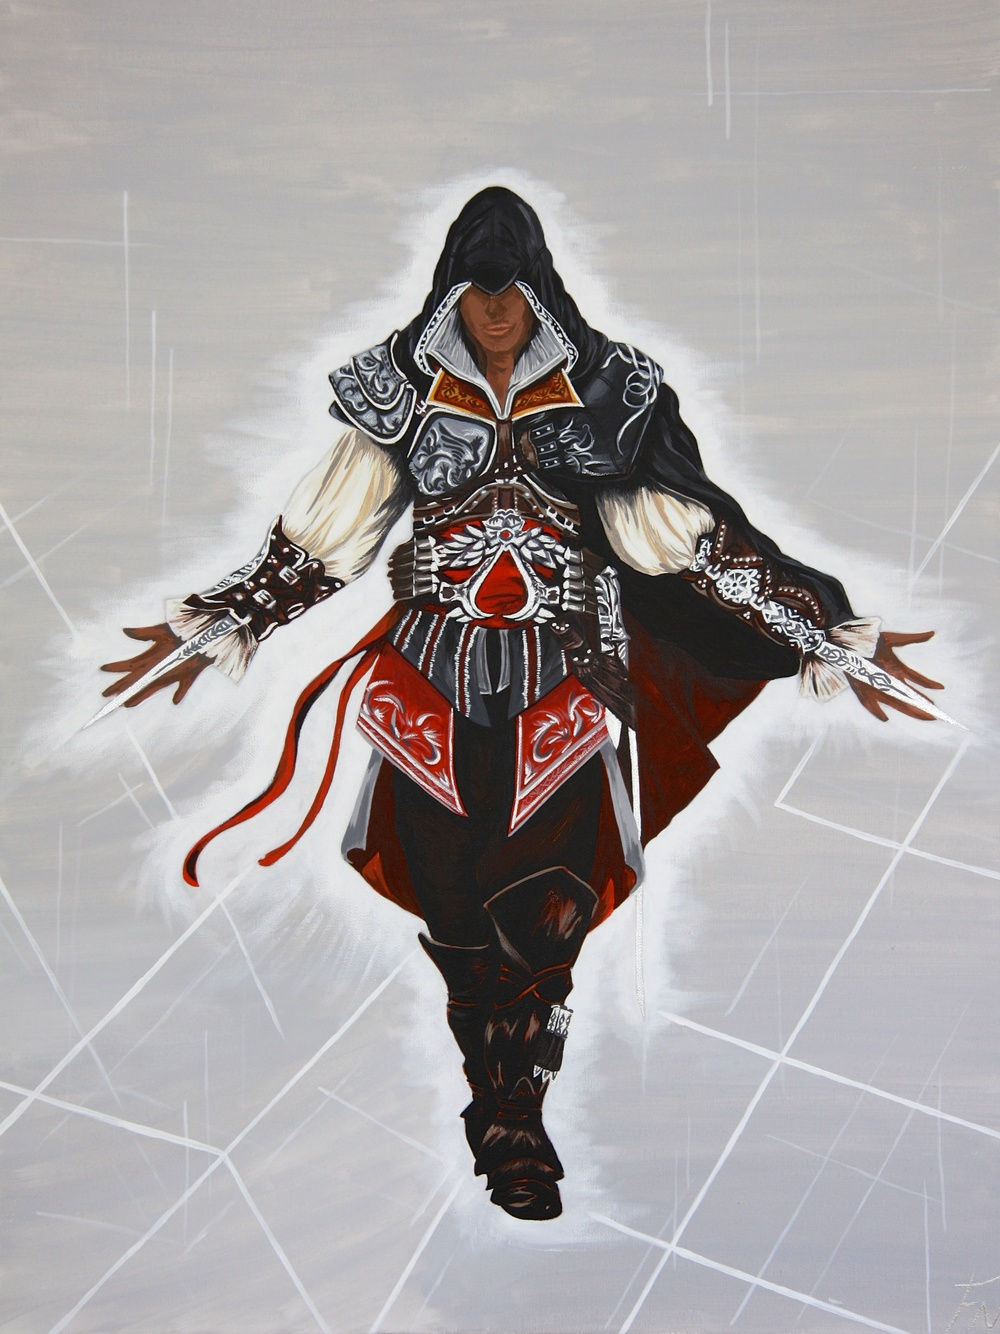 Assassin's Creed 80x60cm Contact Feike for pricing info